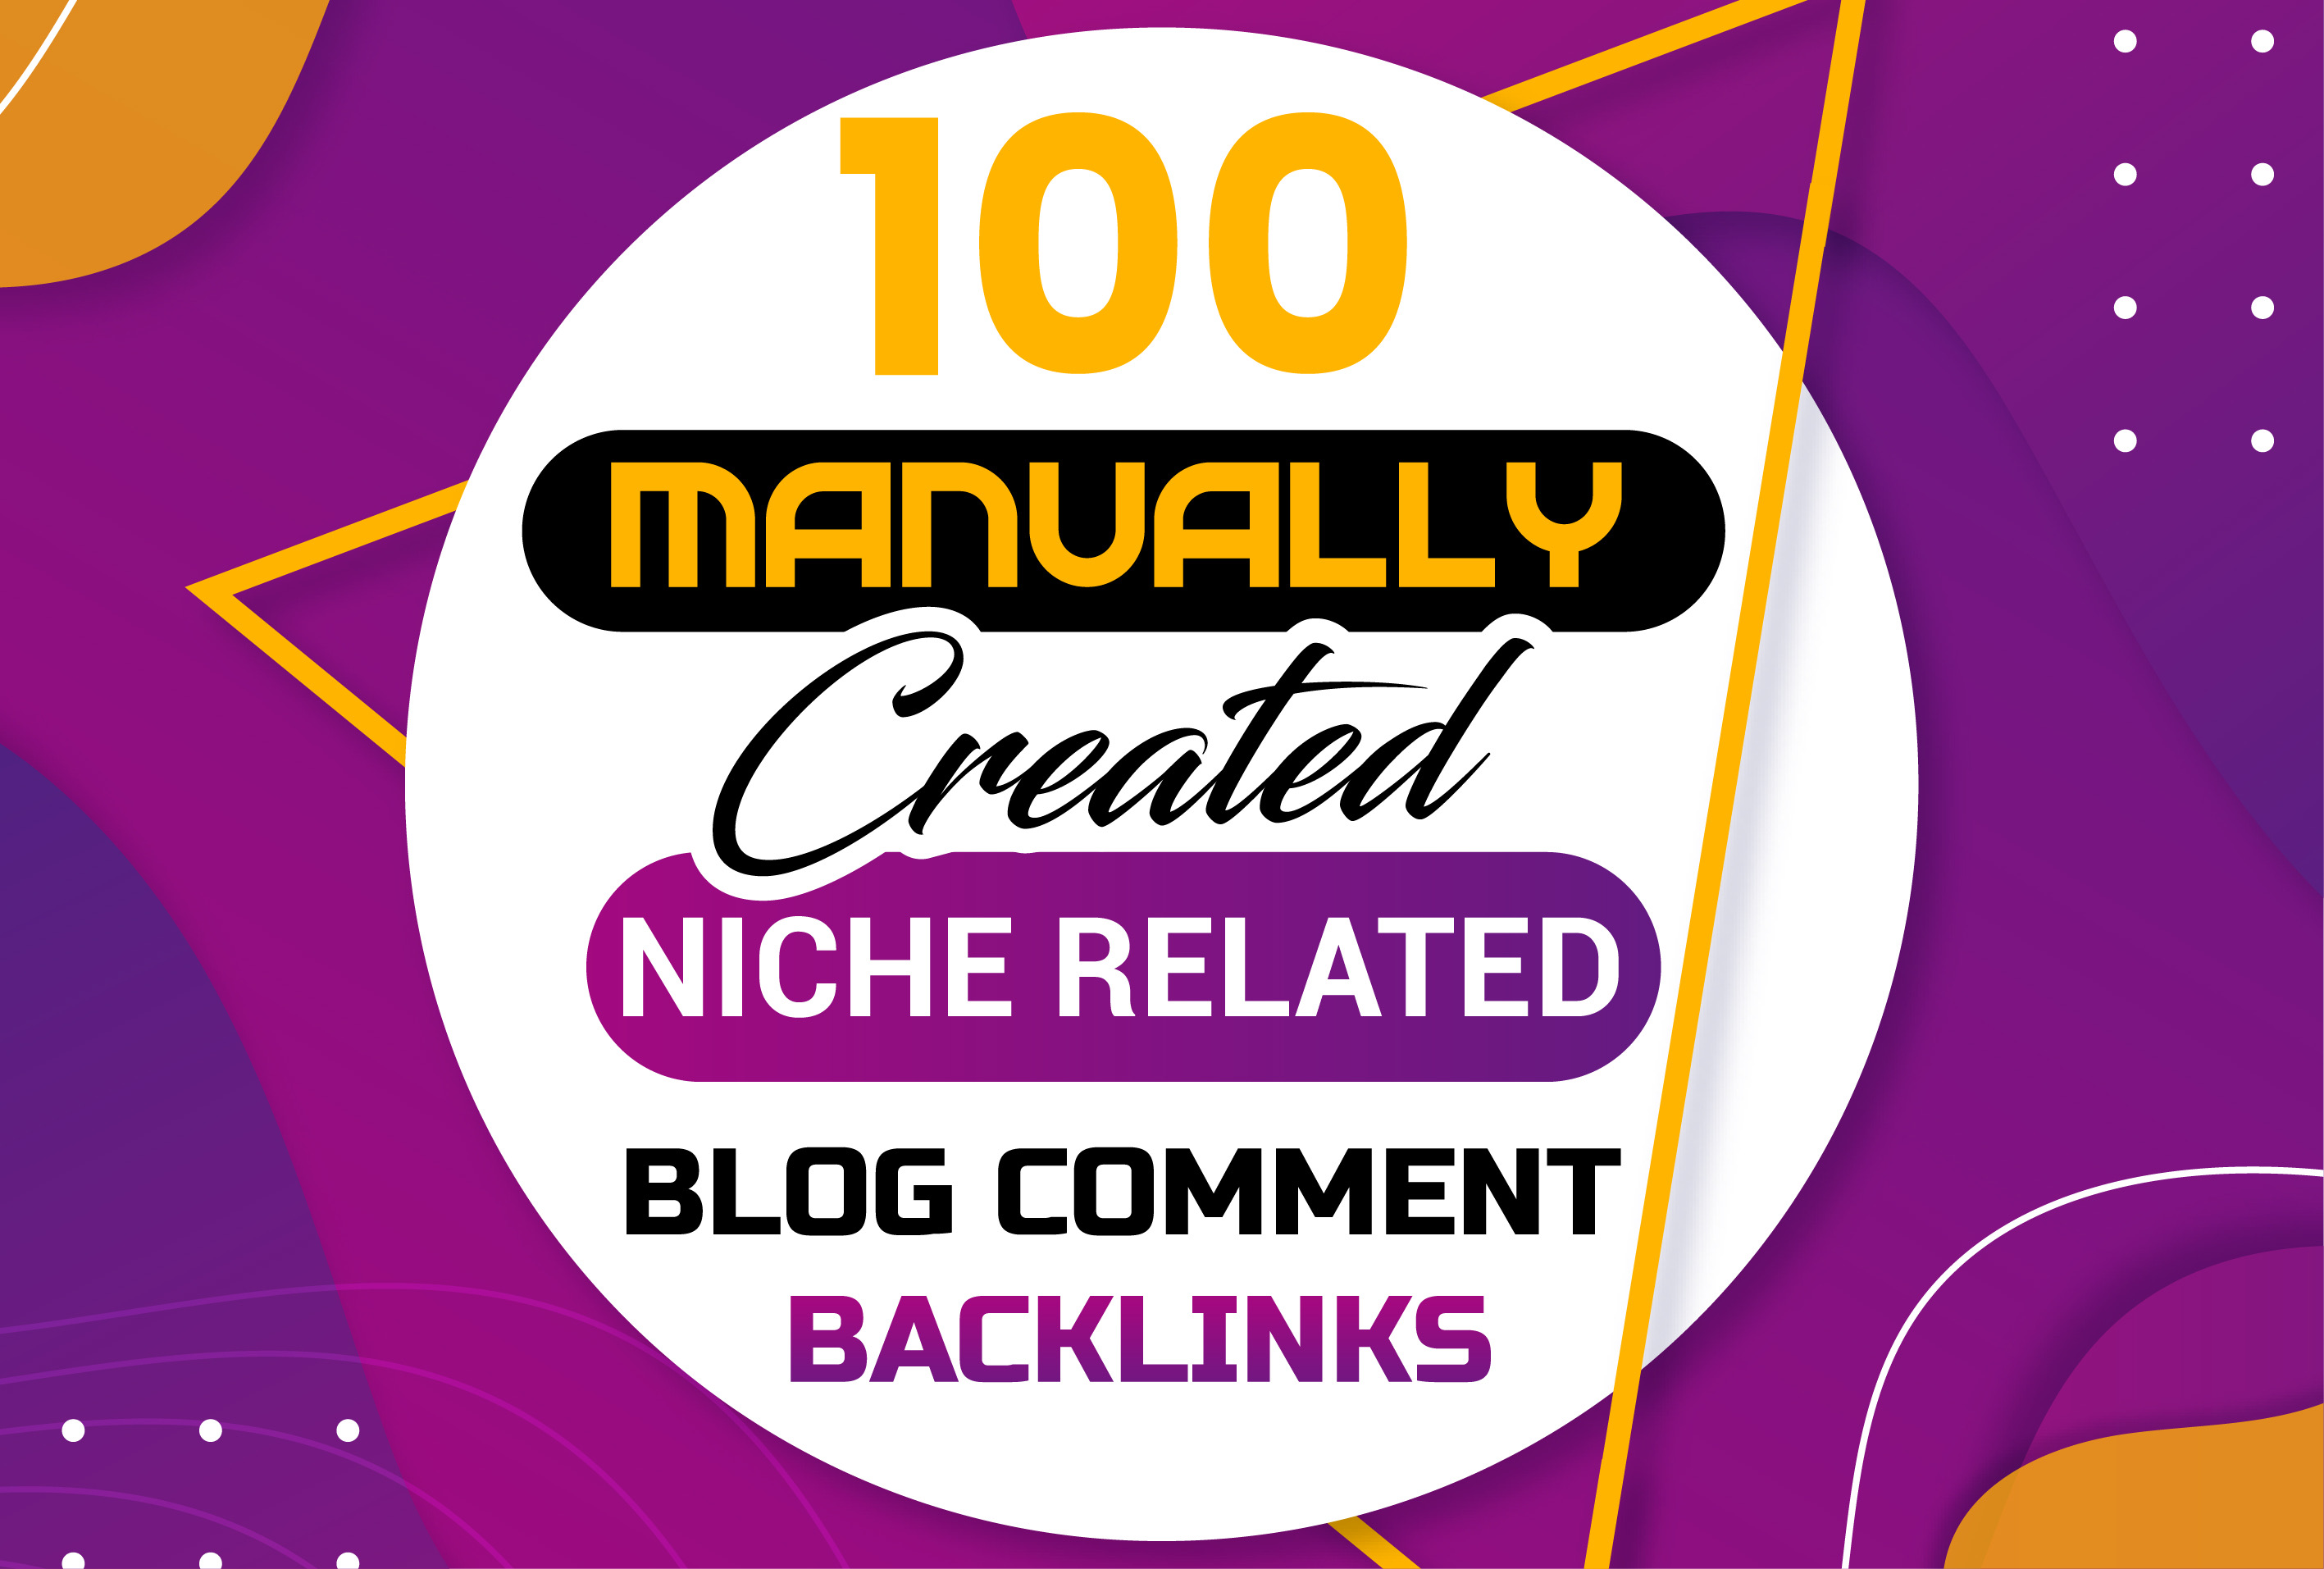 Provide 100 Manually Created Blog Comment Backlinks